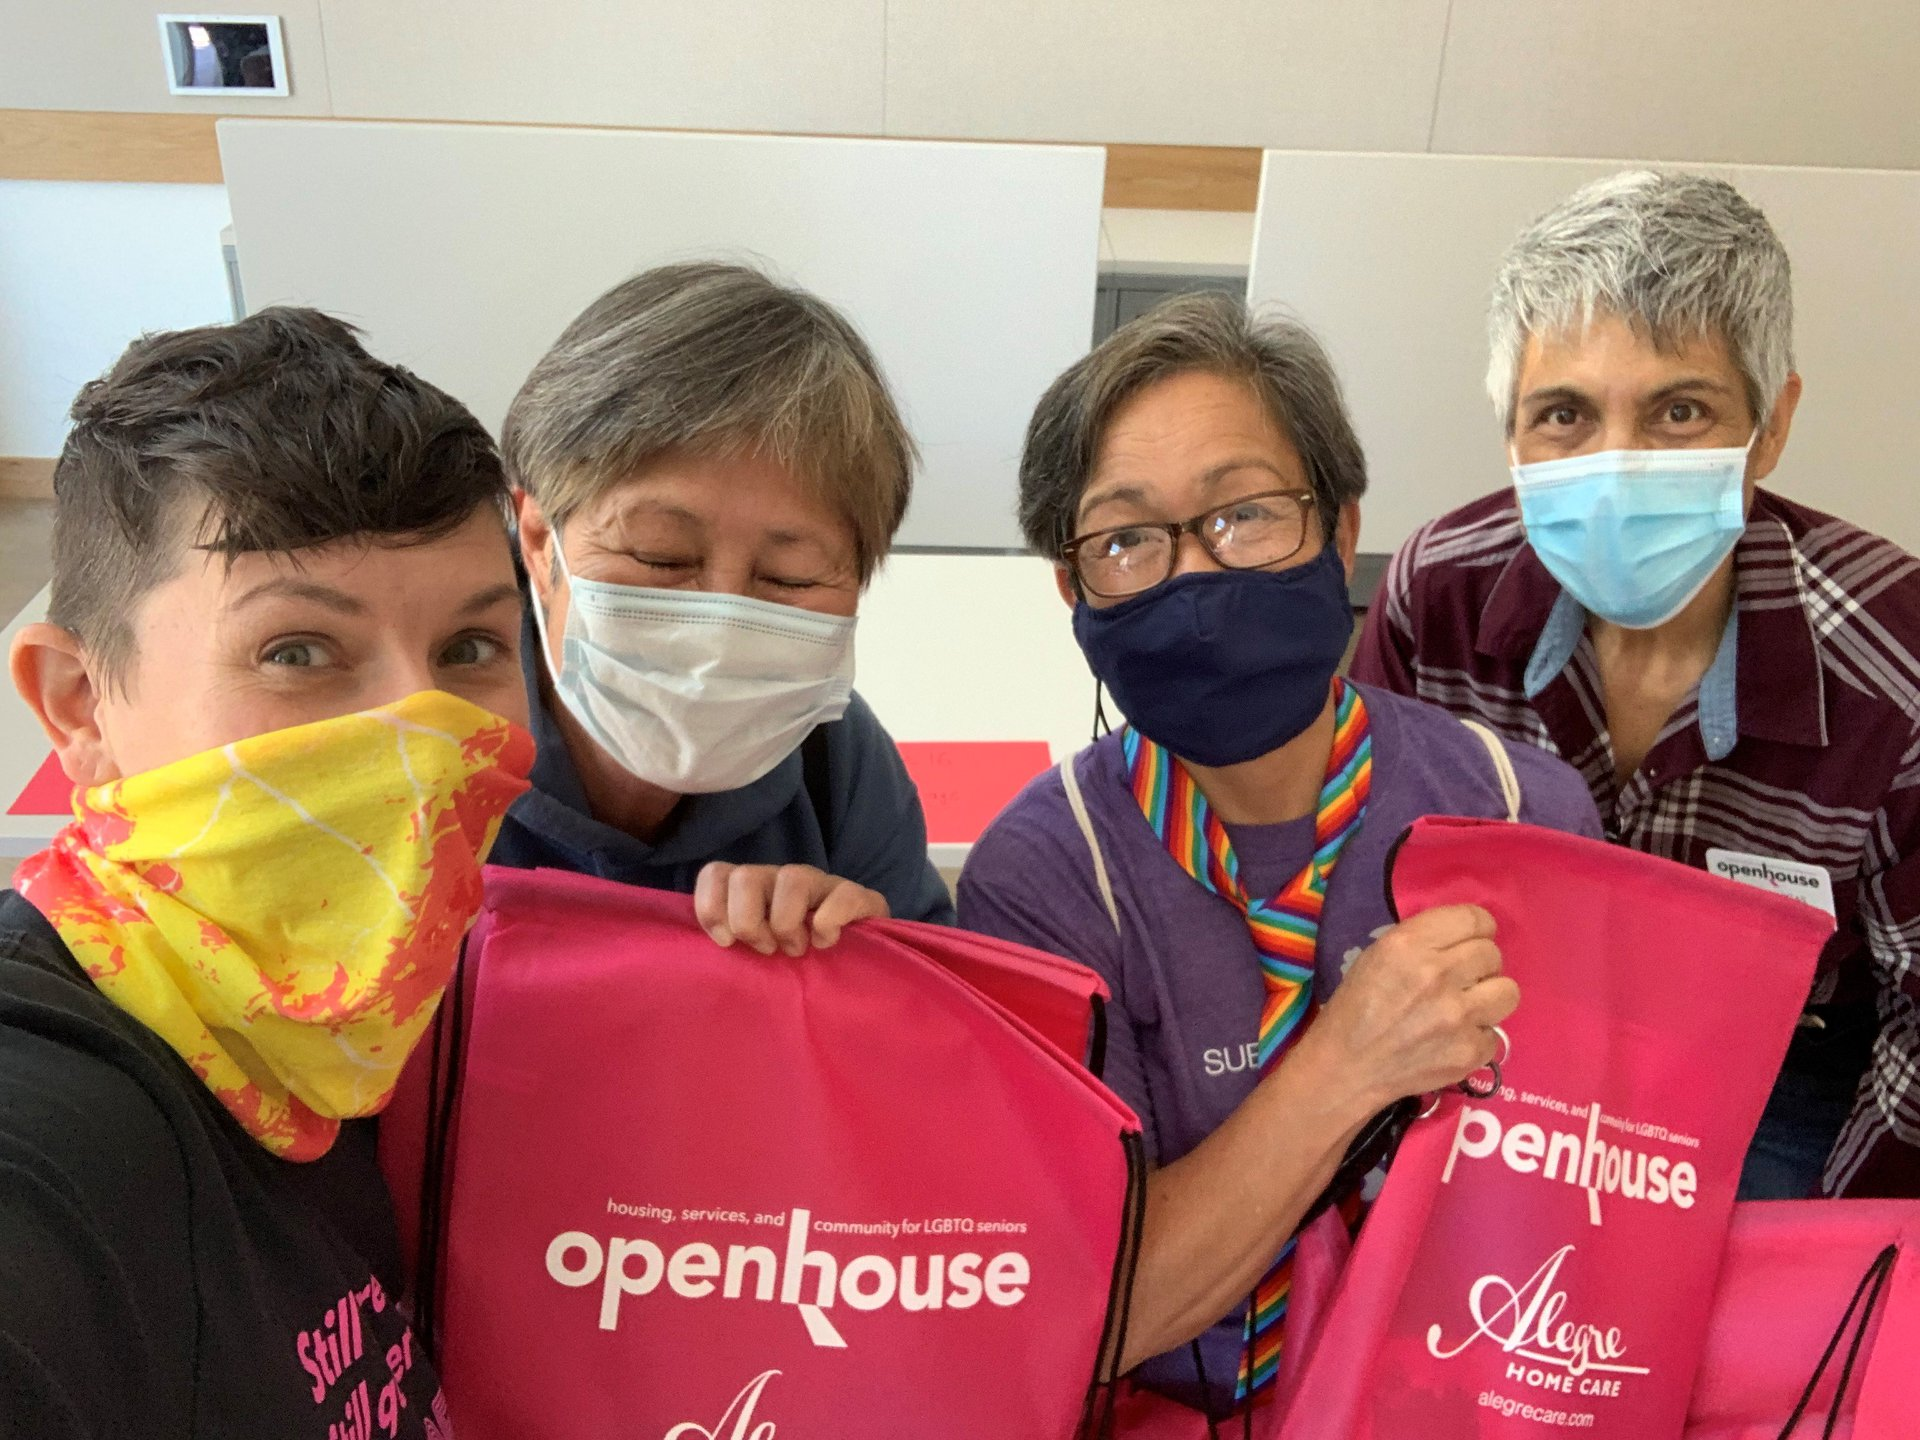 Openhouse delivering groceries to LGBTQ seniors